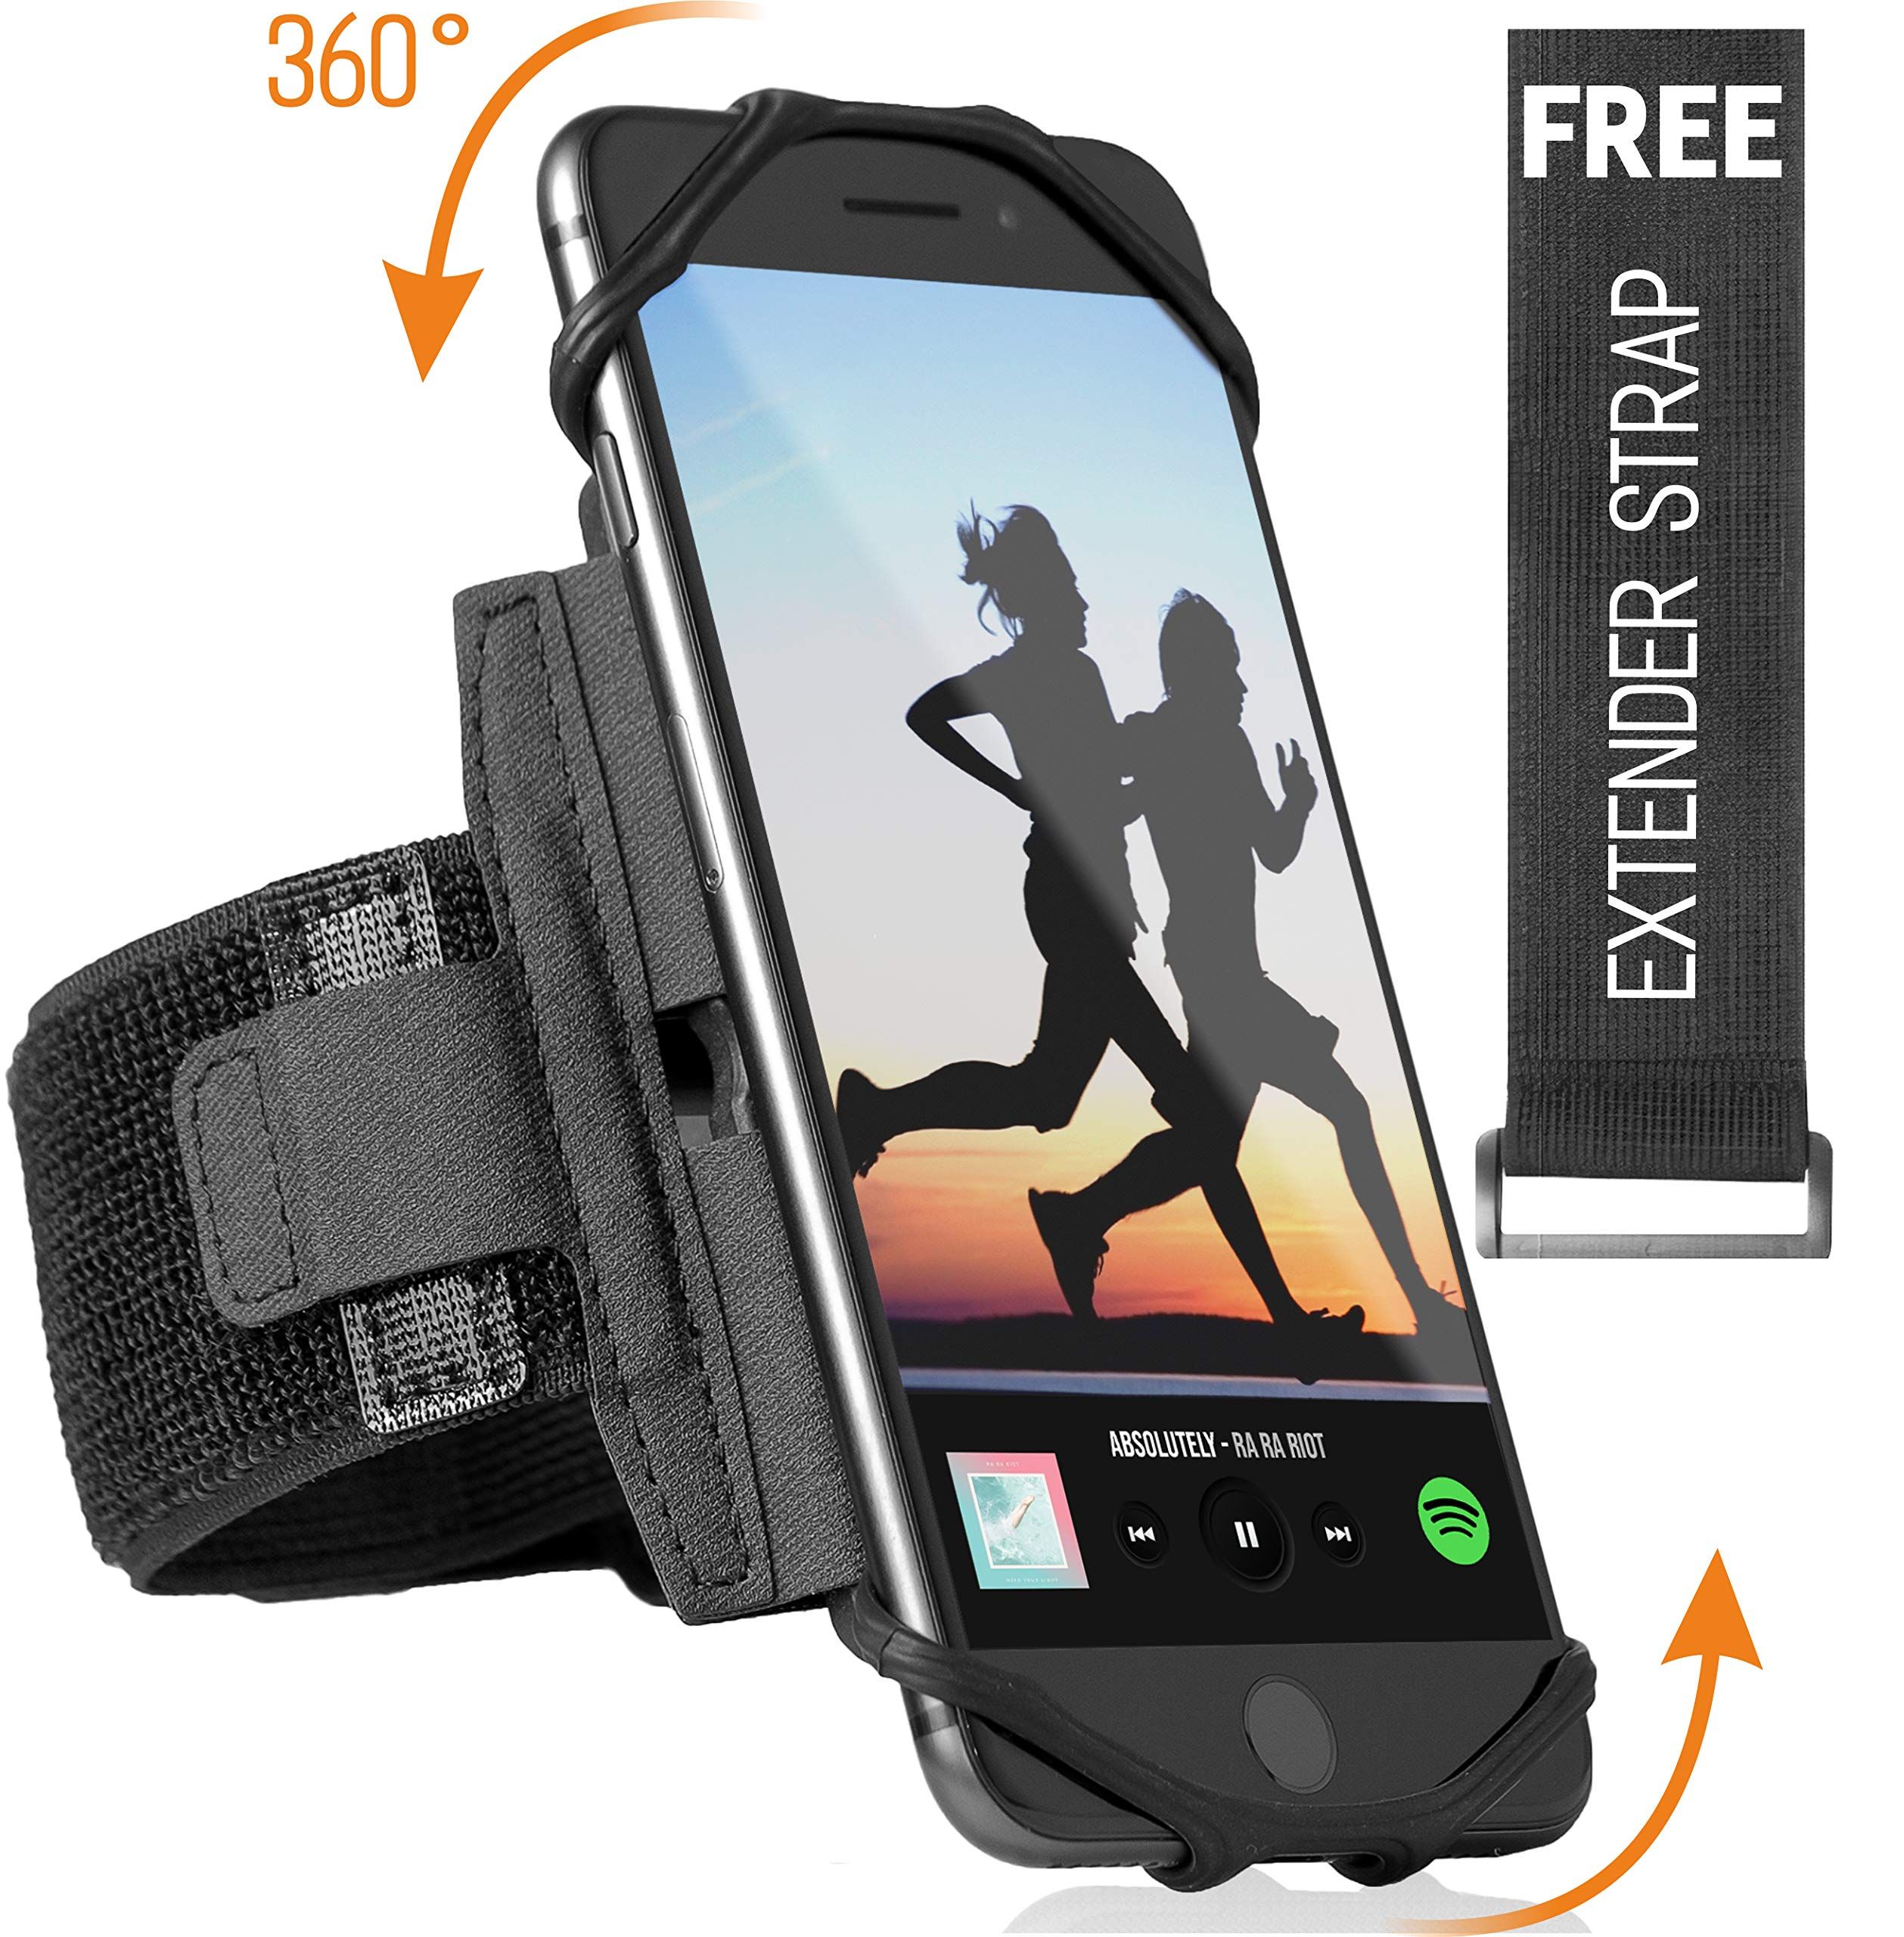 360° Rotatable Premium Sports Running Armband for All Phones: iPhone X XR XS Max 8 Plus 7 Plus 6, Samsung Galaxy A8 S10 S9 S8 Edge, LG, HTC, Pixel; Universal Cellphone Holder + Free Extender Strap by ideas4comfort